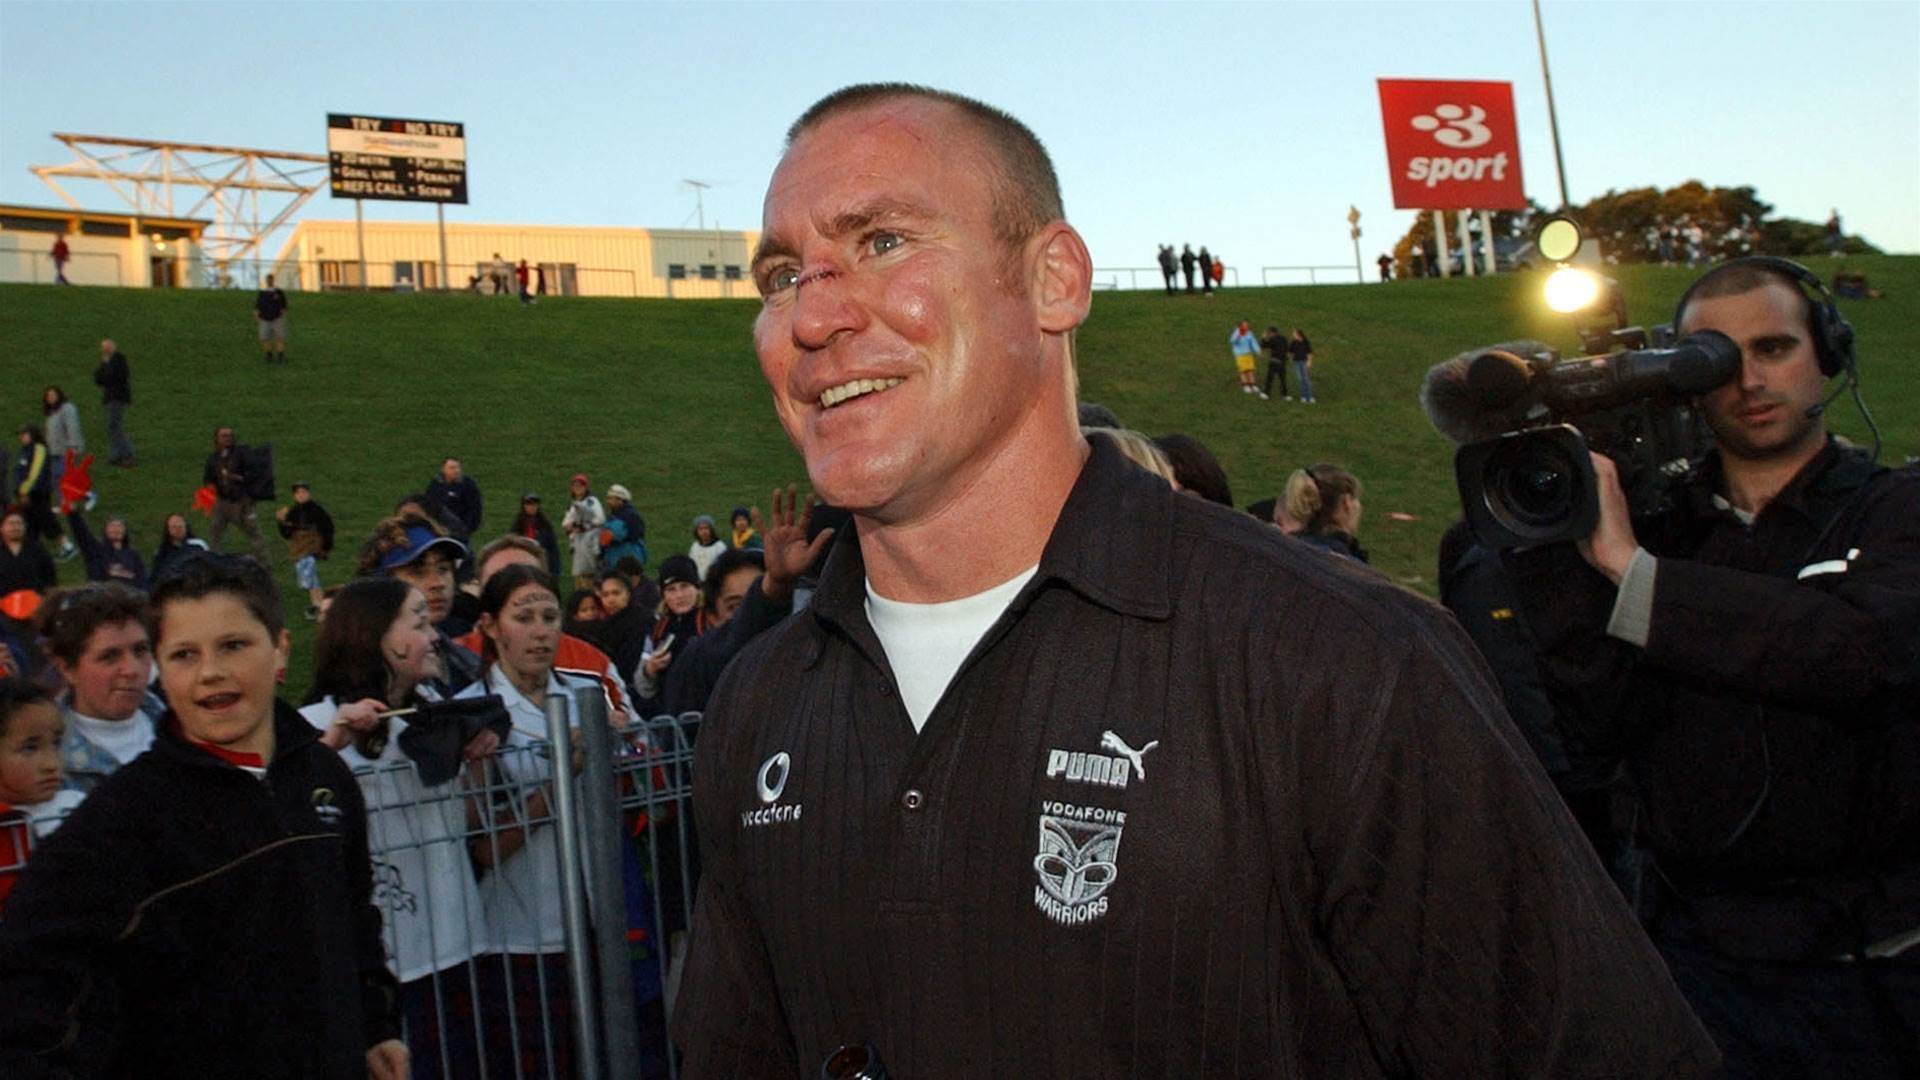 Campion and Webcke's heavyweight stoush of 2002